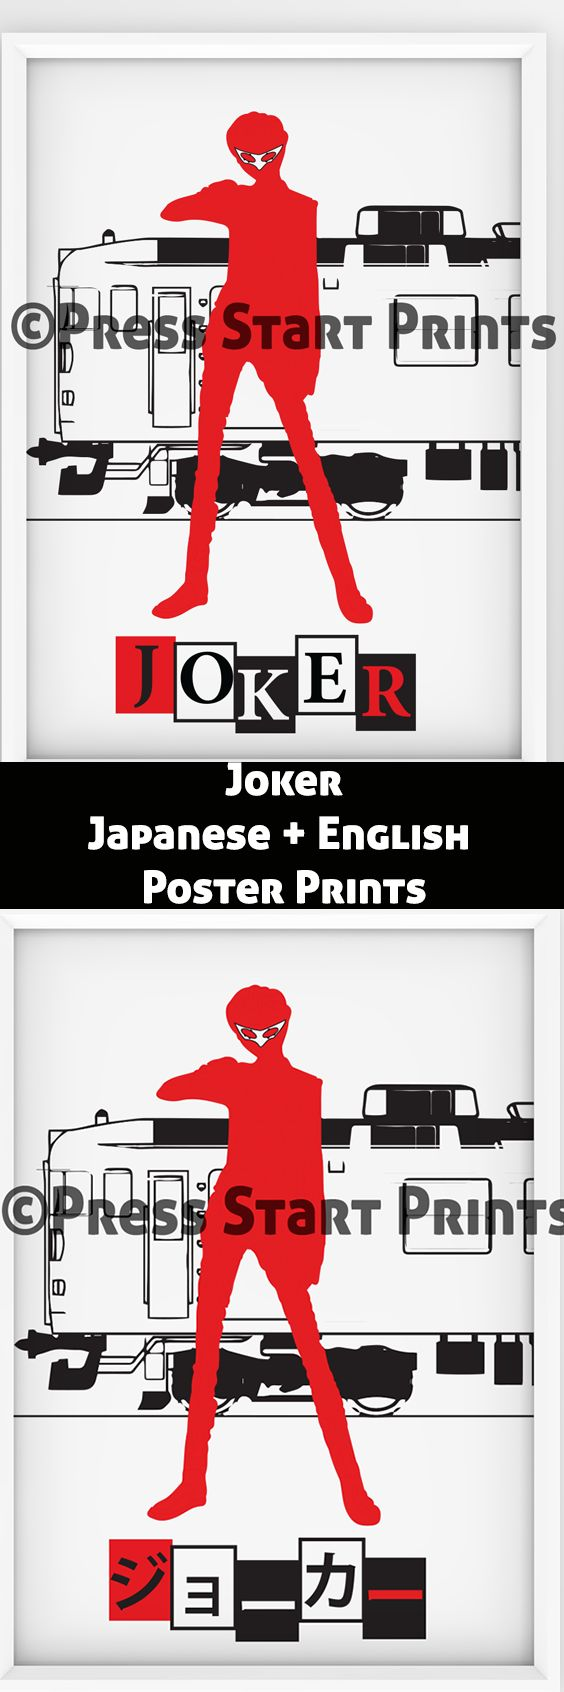 Persona 5 Joker Poster Art Prints in Japanese and English. Get 'up and out there' with these high quality instant downloadable posters of the protagonist of P5 to game up any space!  Visit this page for more information  https://www.etsy.com/nz/listing/506835472/persona-5-joker-digital-print-inspired?ref=shop_home_active_1